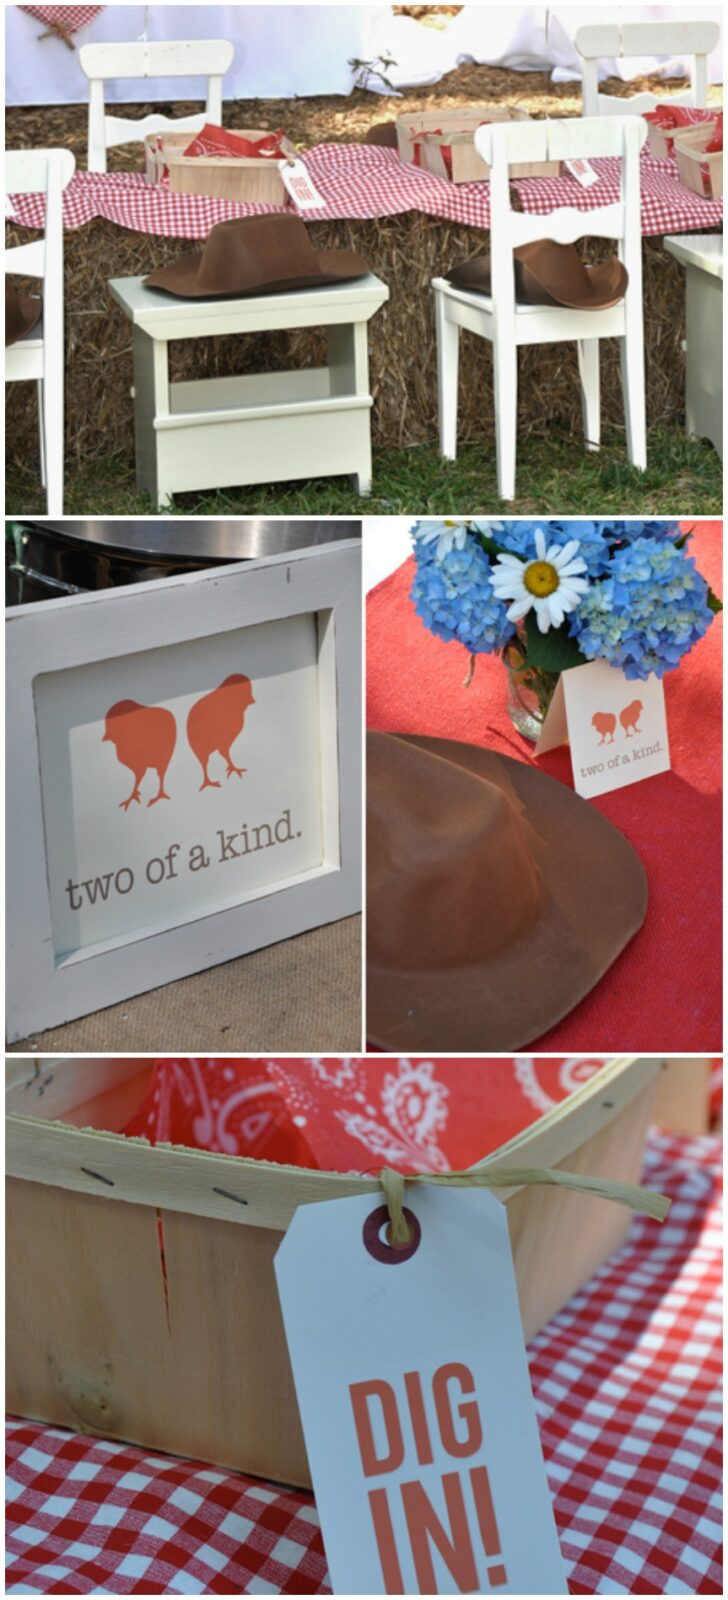 Country farm party by The Little Nook featured on The Party Teacher